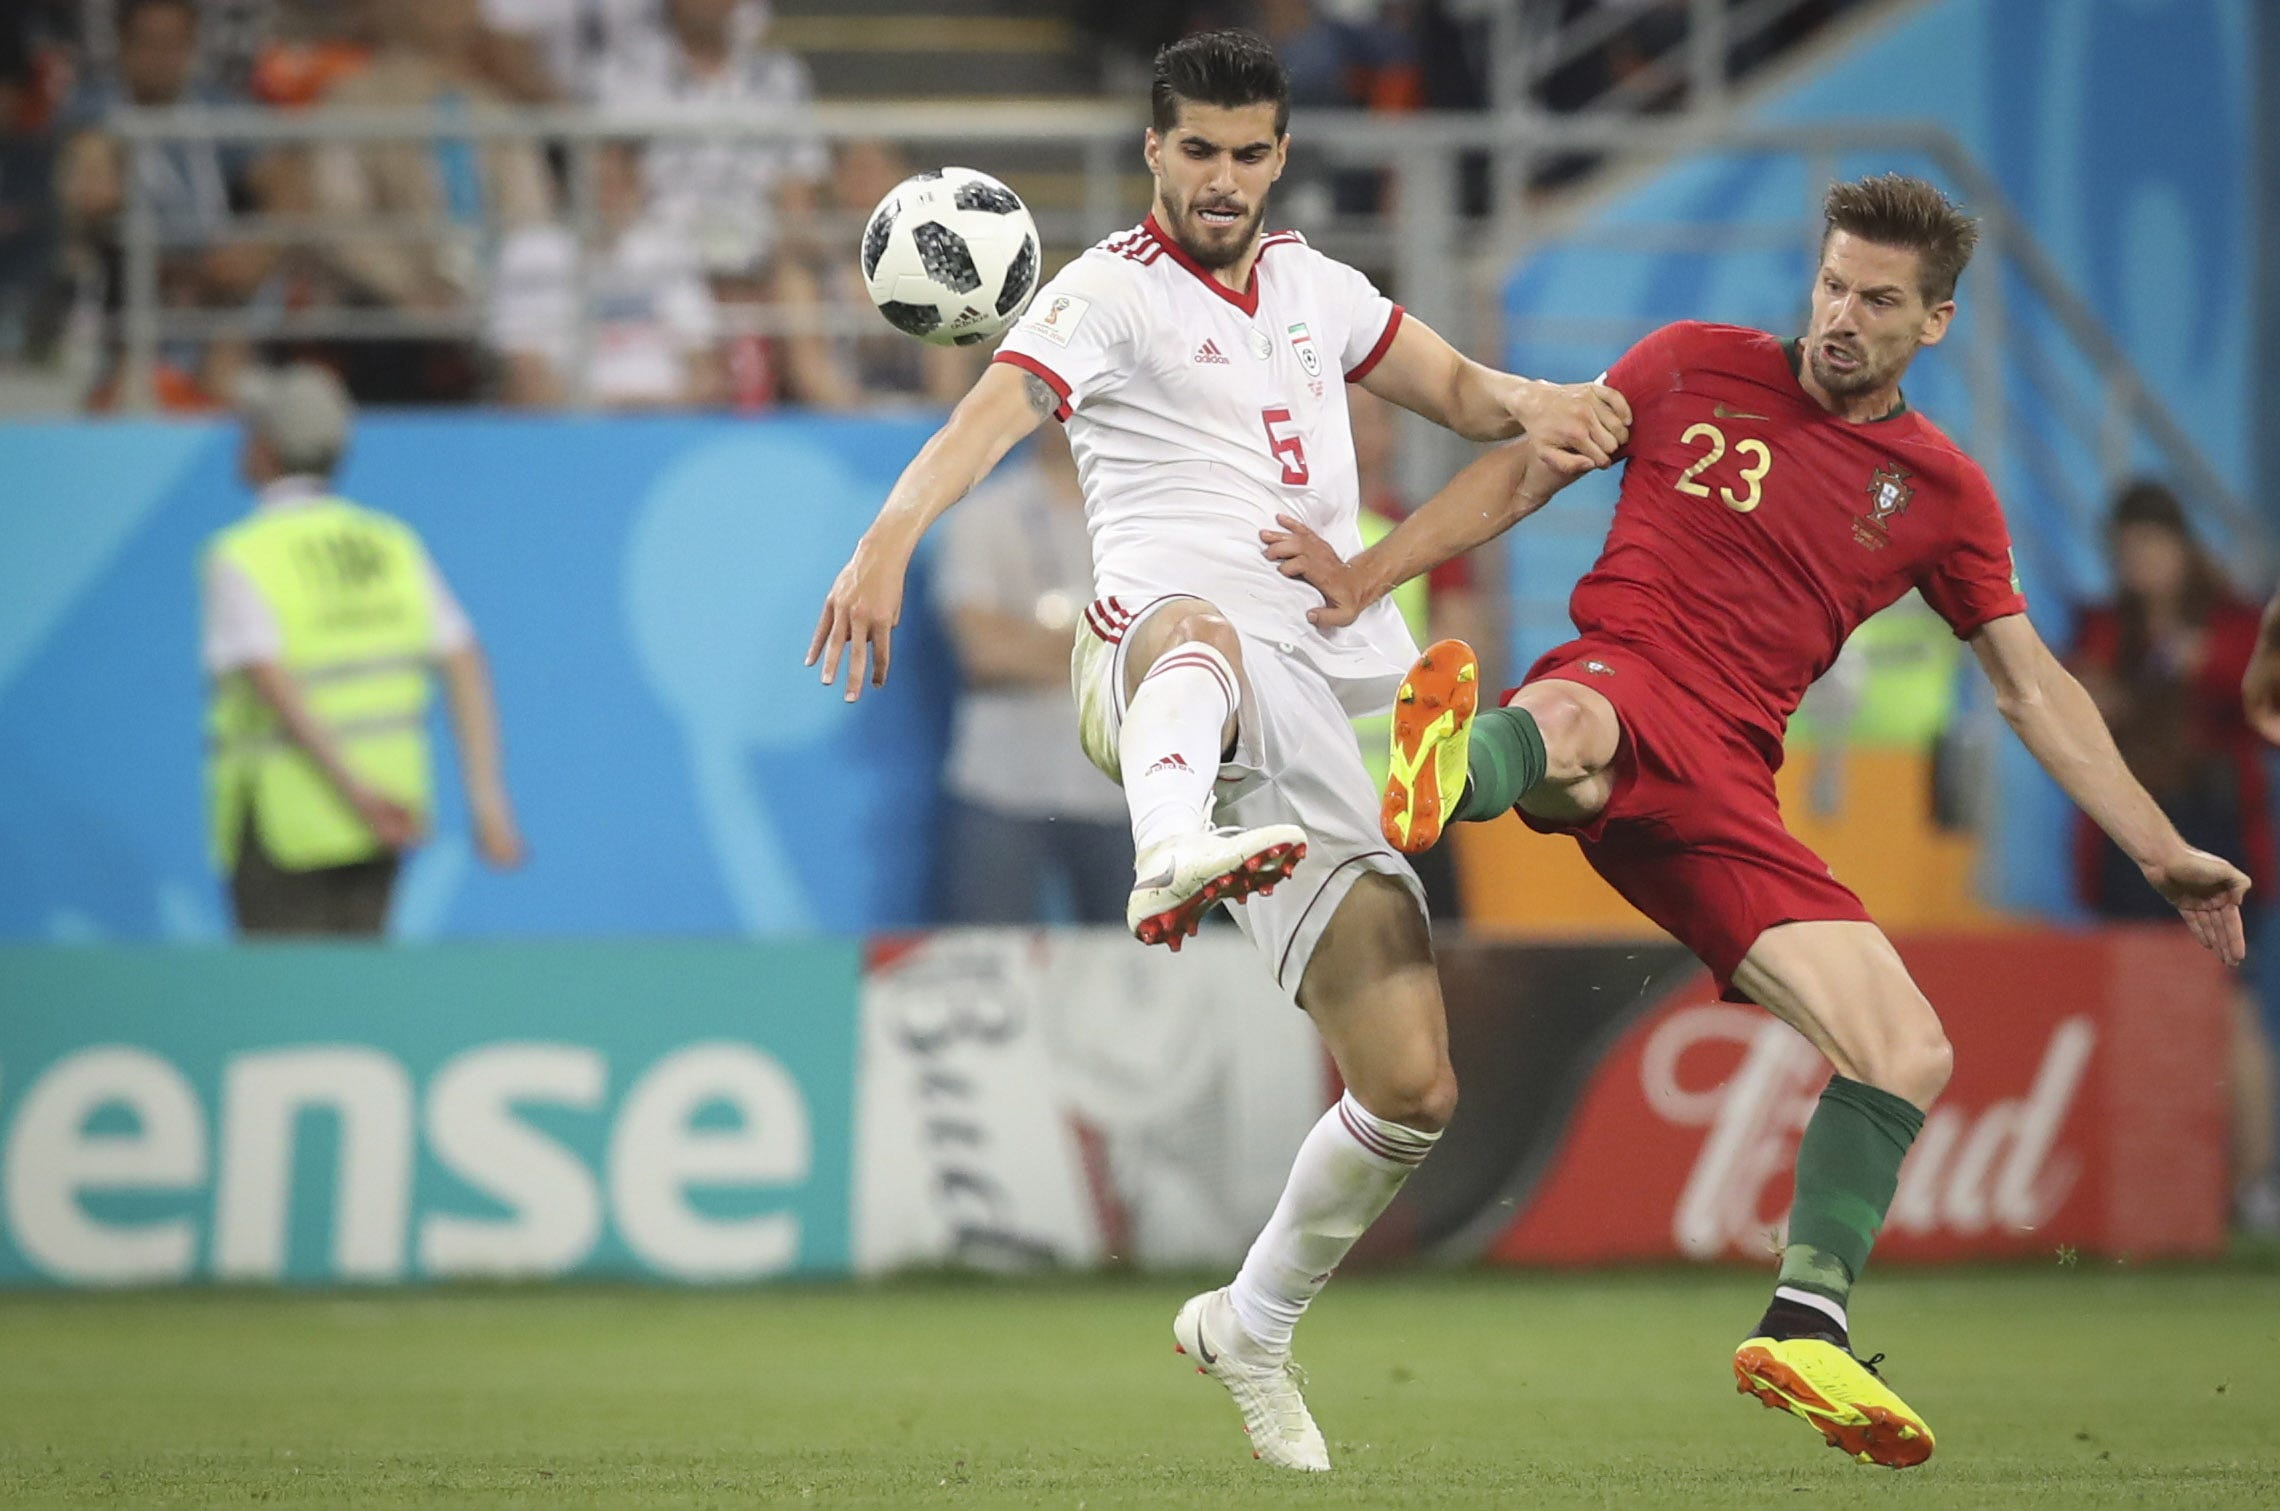 Portuguese player Adrien, right, and Iranian player Saeid Ezatolahi vie for the ball in Group B play during the FIFA World Cup 2018 at Mordovia Arena in Saransk, Russia.